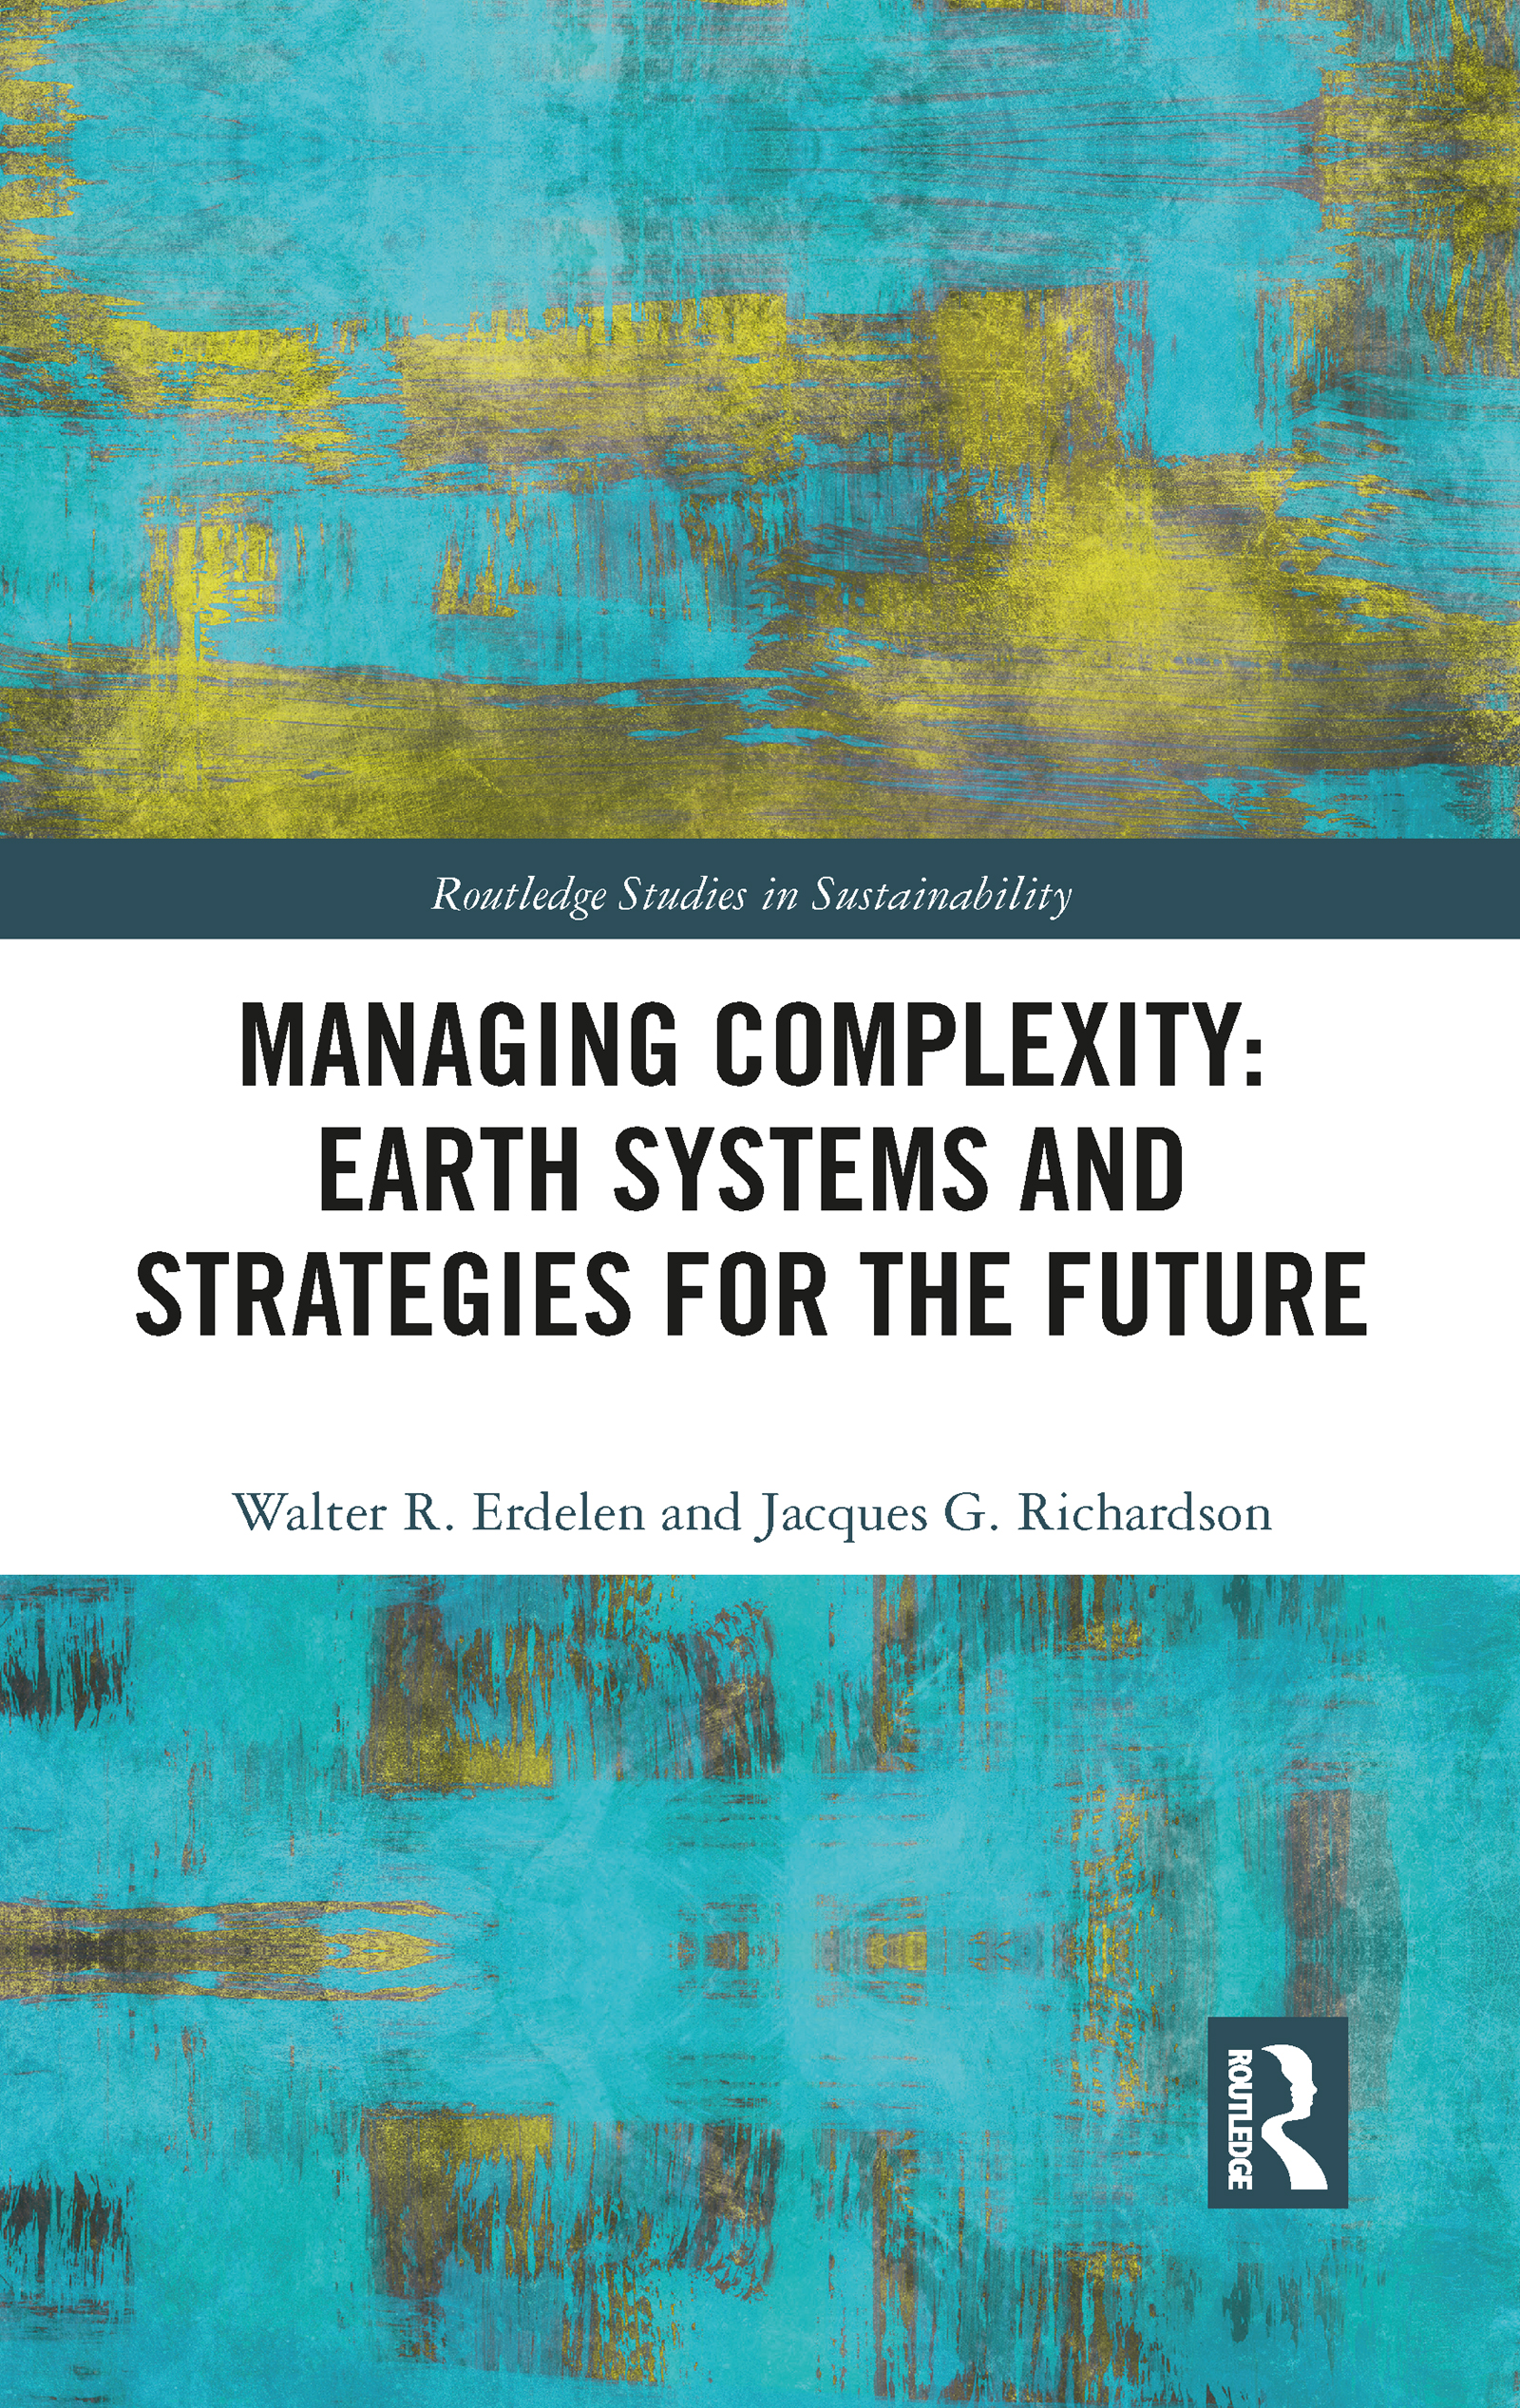 Managing Complexity: Earth Systems and Strategies for the Future